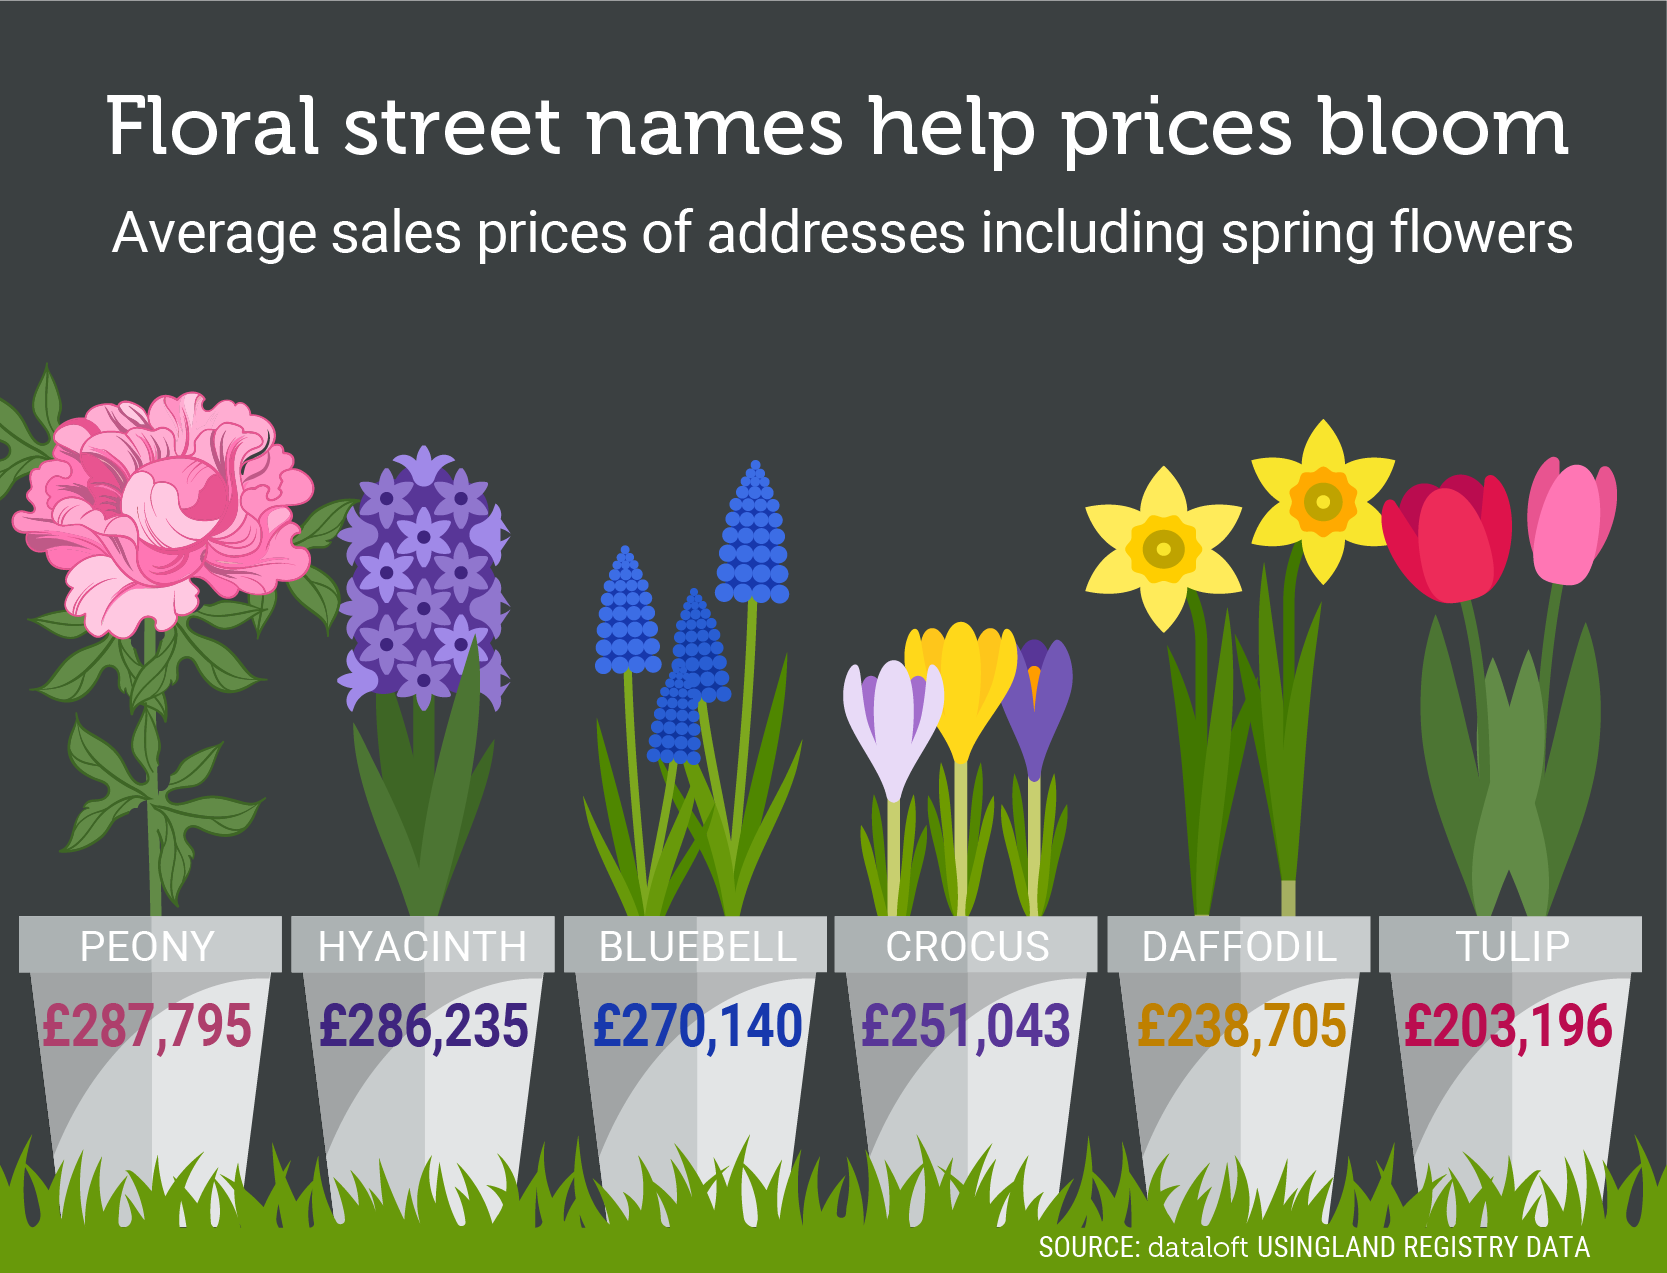 Floral street names lawrence rand estate agents floral street names mightylinksfo